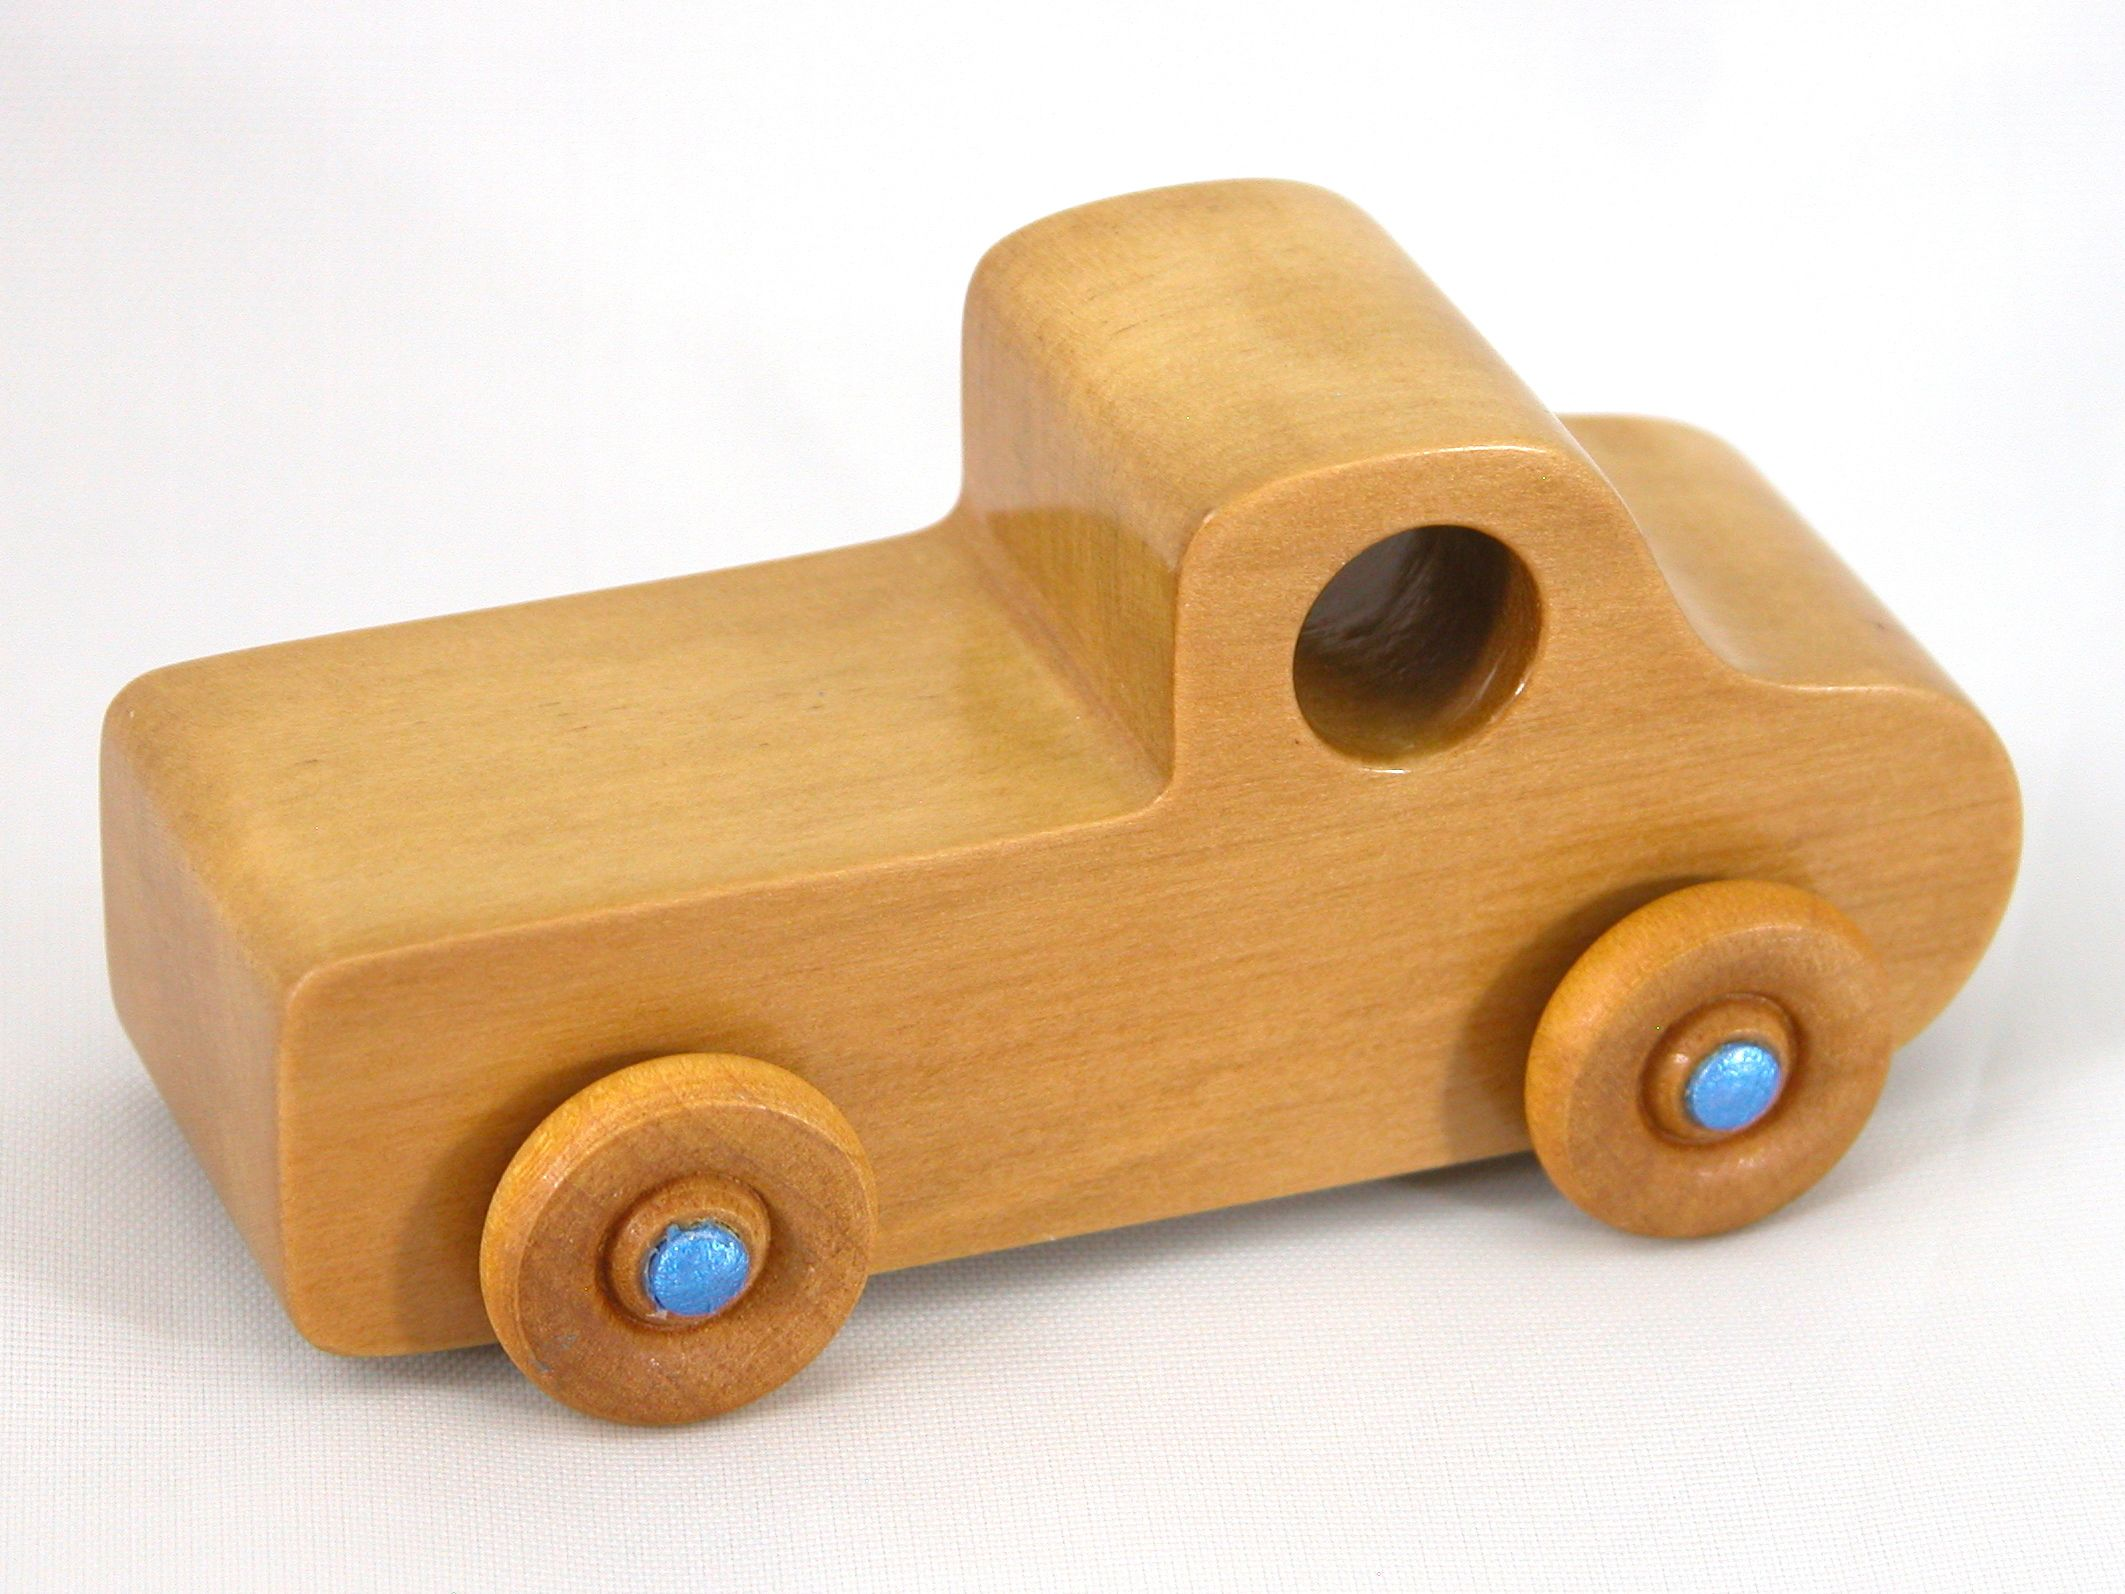 wooden toy pickup truck from the play pal series | wood toys